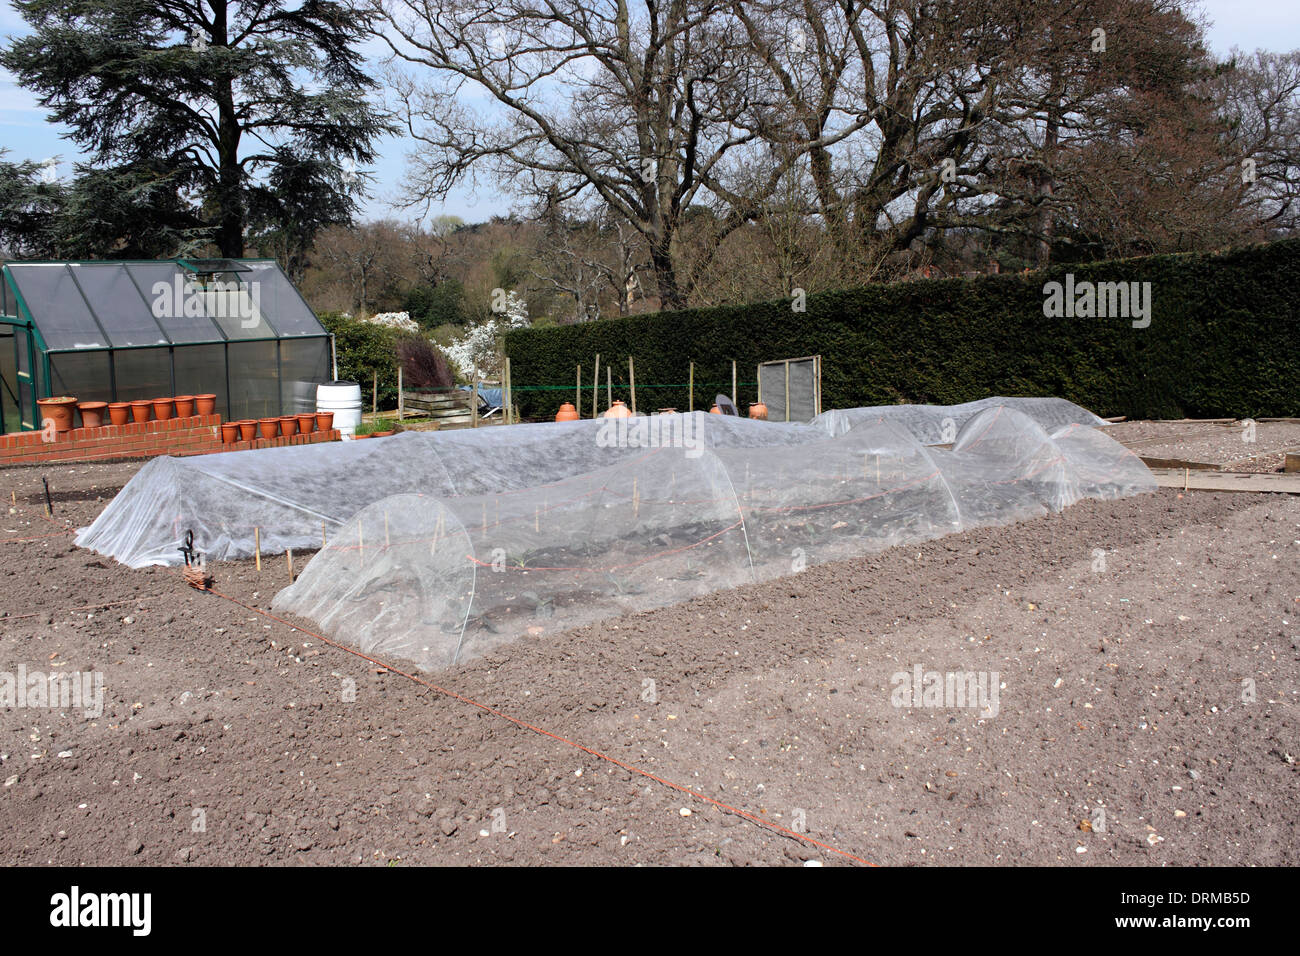 SEEDBEDS PROTECTED BY HORTICULTURAL FLEECE. - Stock Image